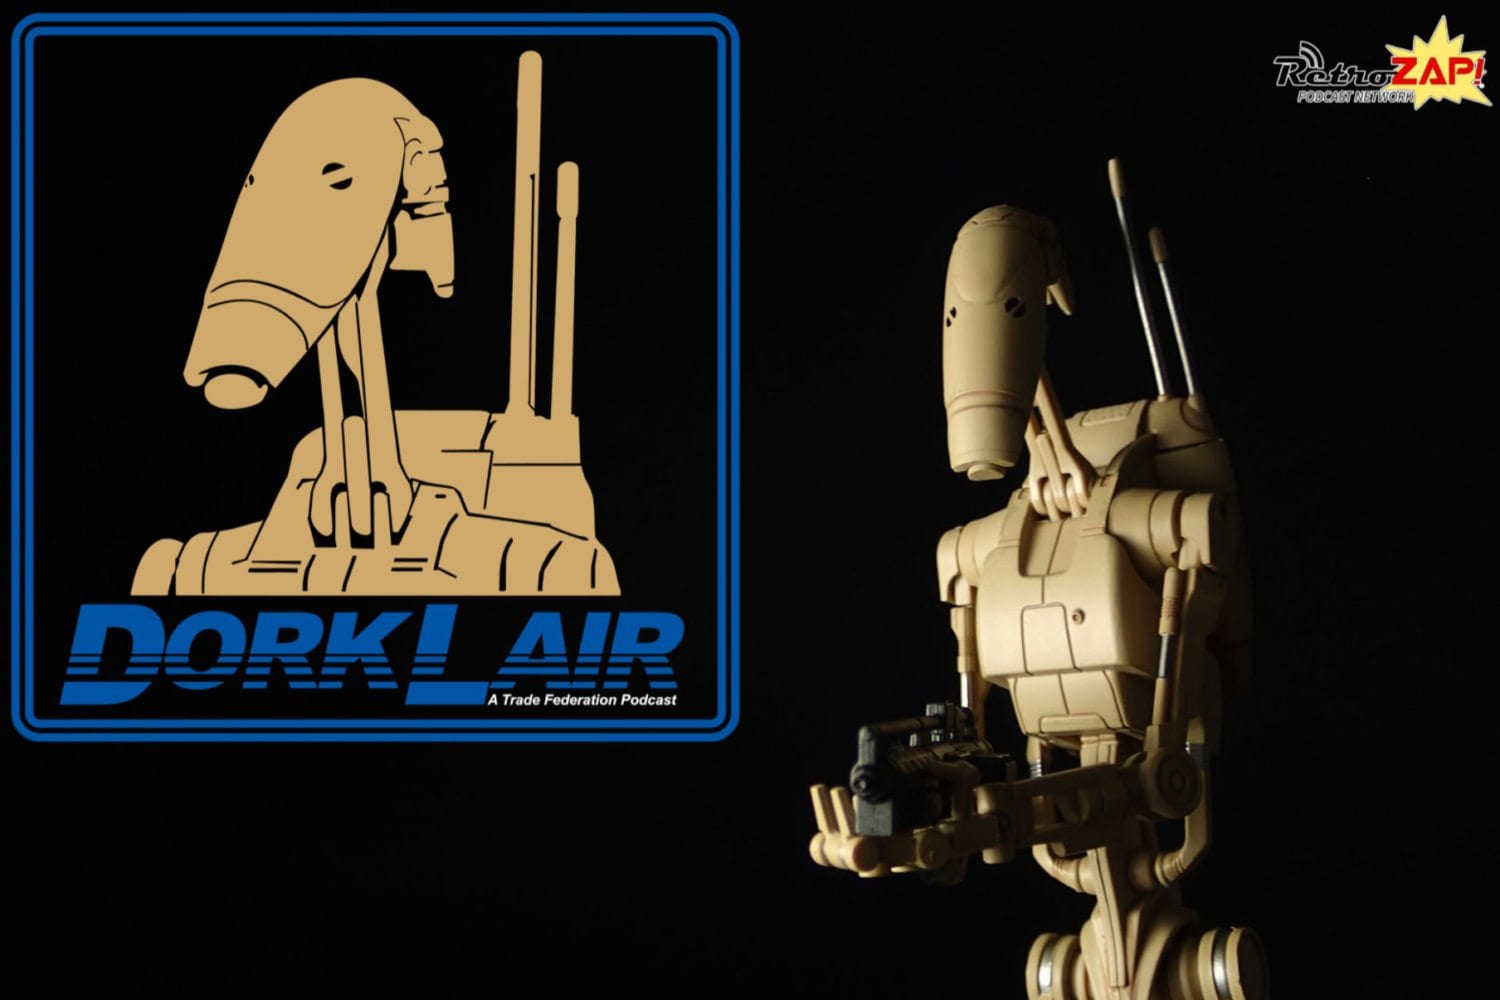 DorkLair 010 SH Figuarts Battle Droid